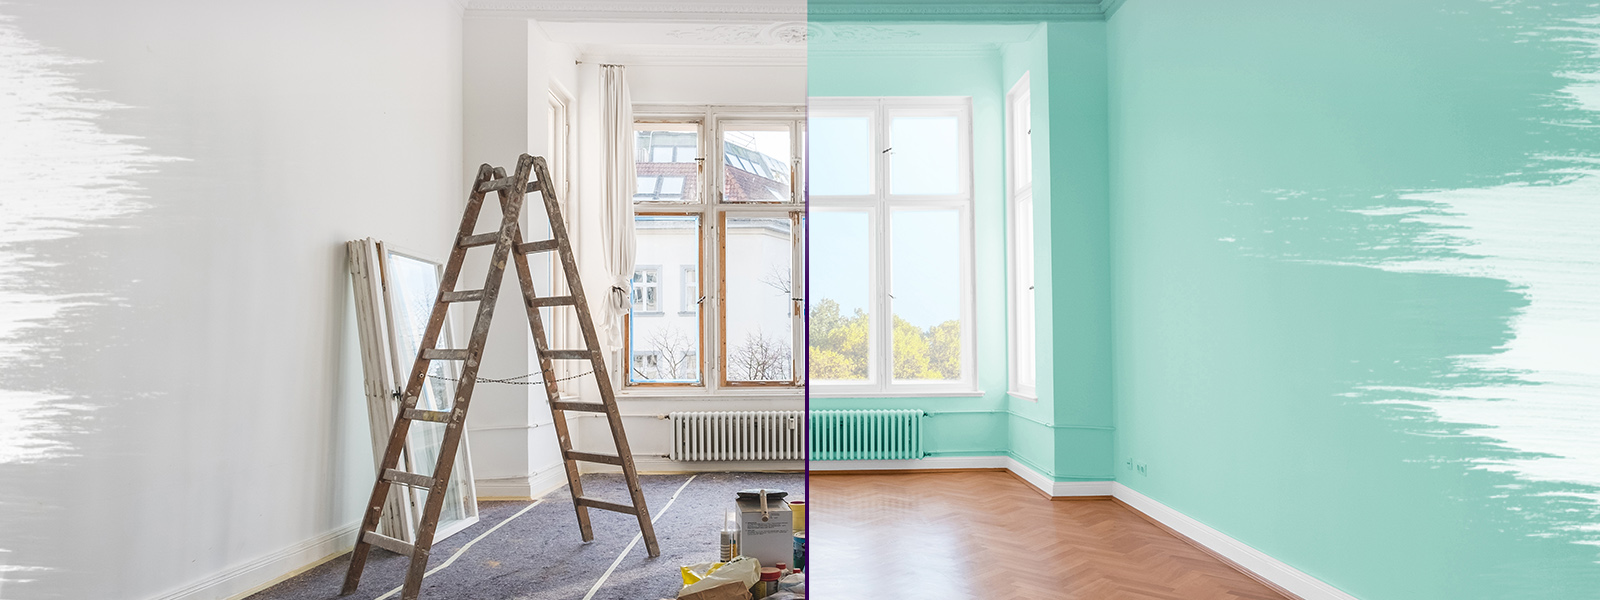 Home remodel comparing old to new